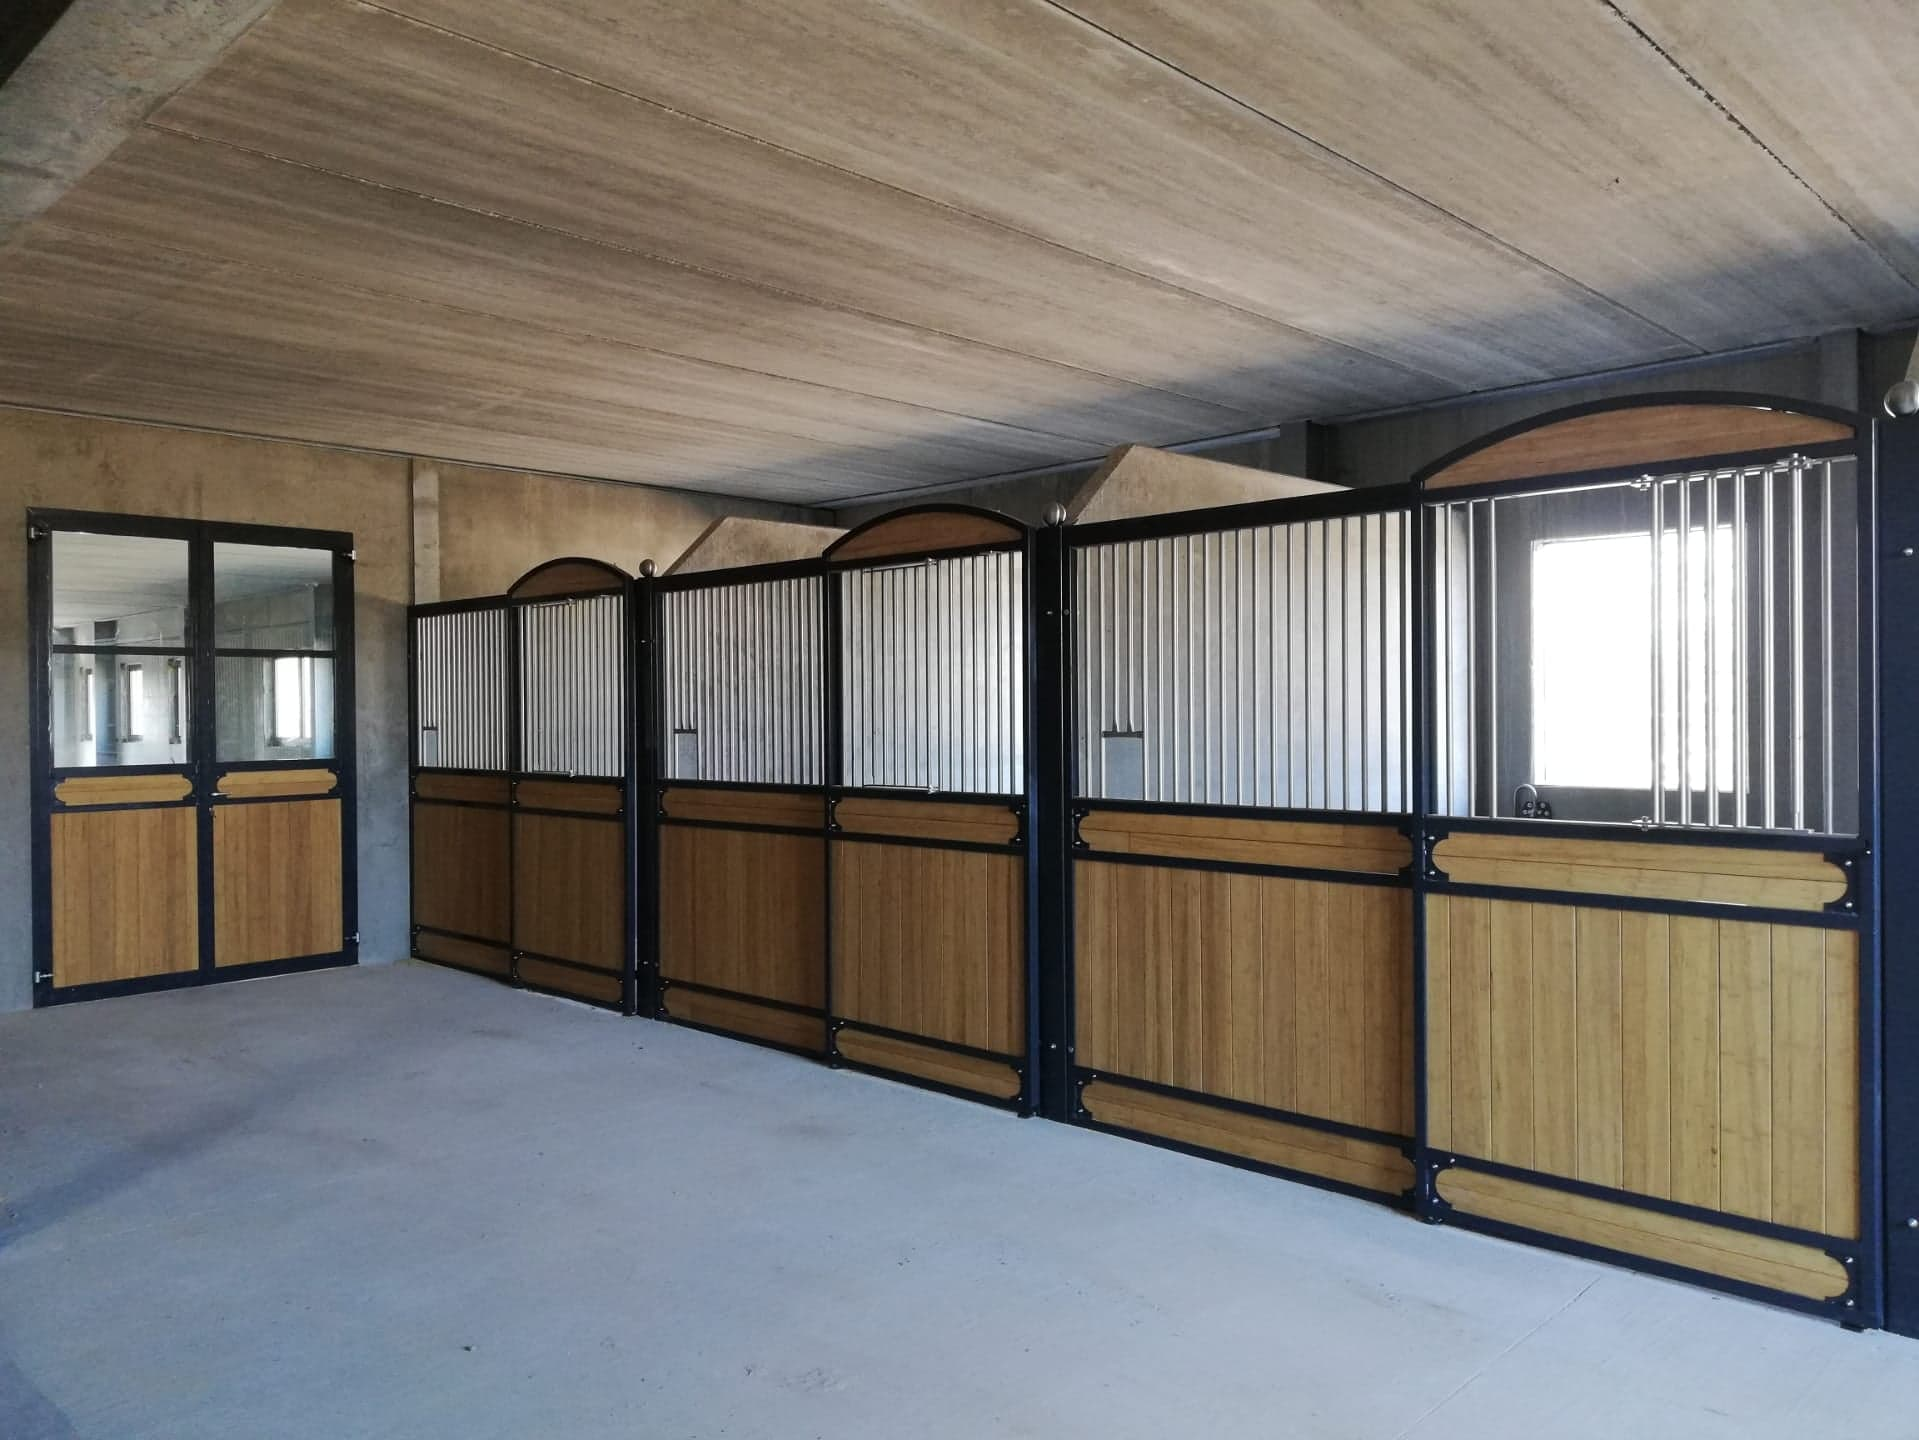 parois luxe wellington paho horse stables a stable to live to work to enjoy. Black Bedroom Furniture Sets. Home Design Ideas